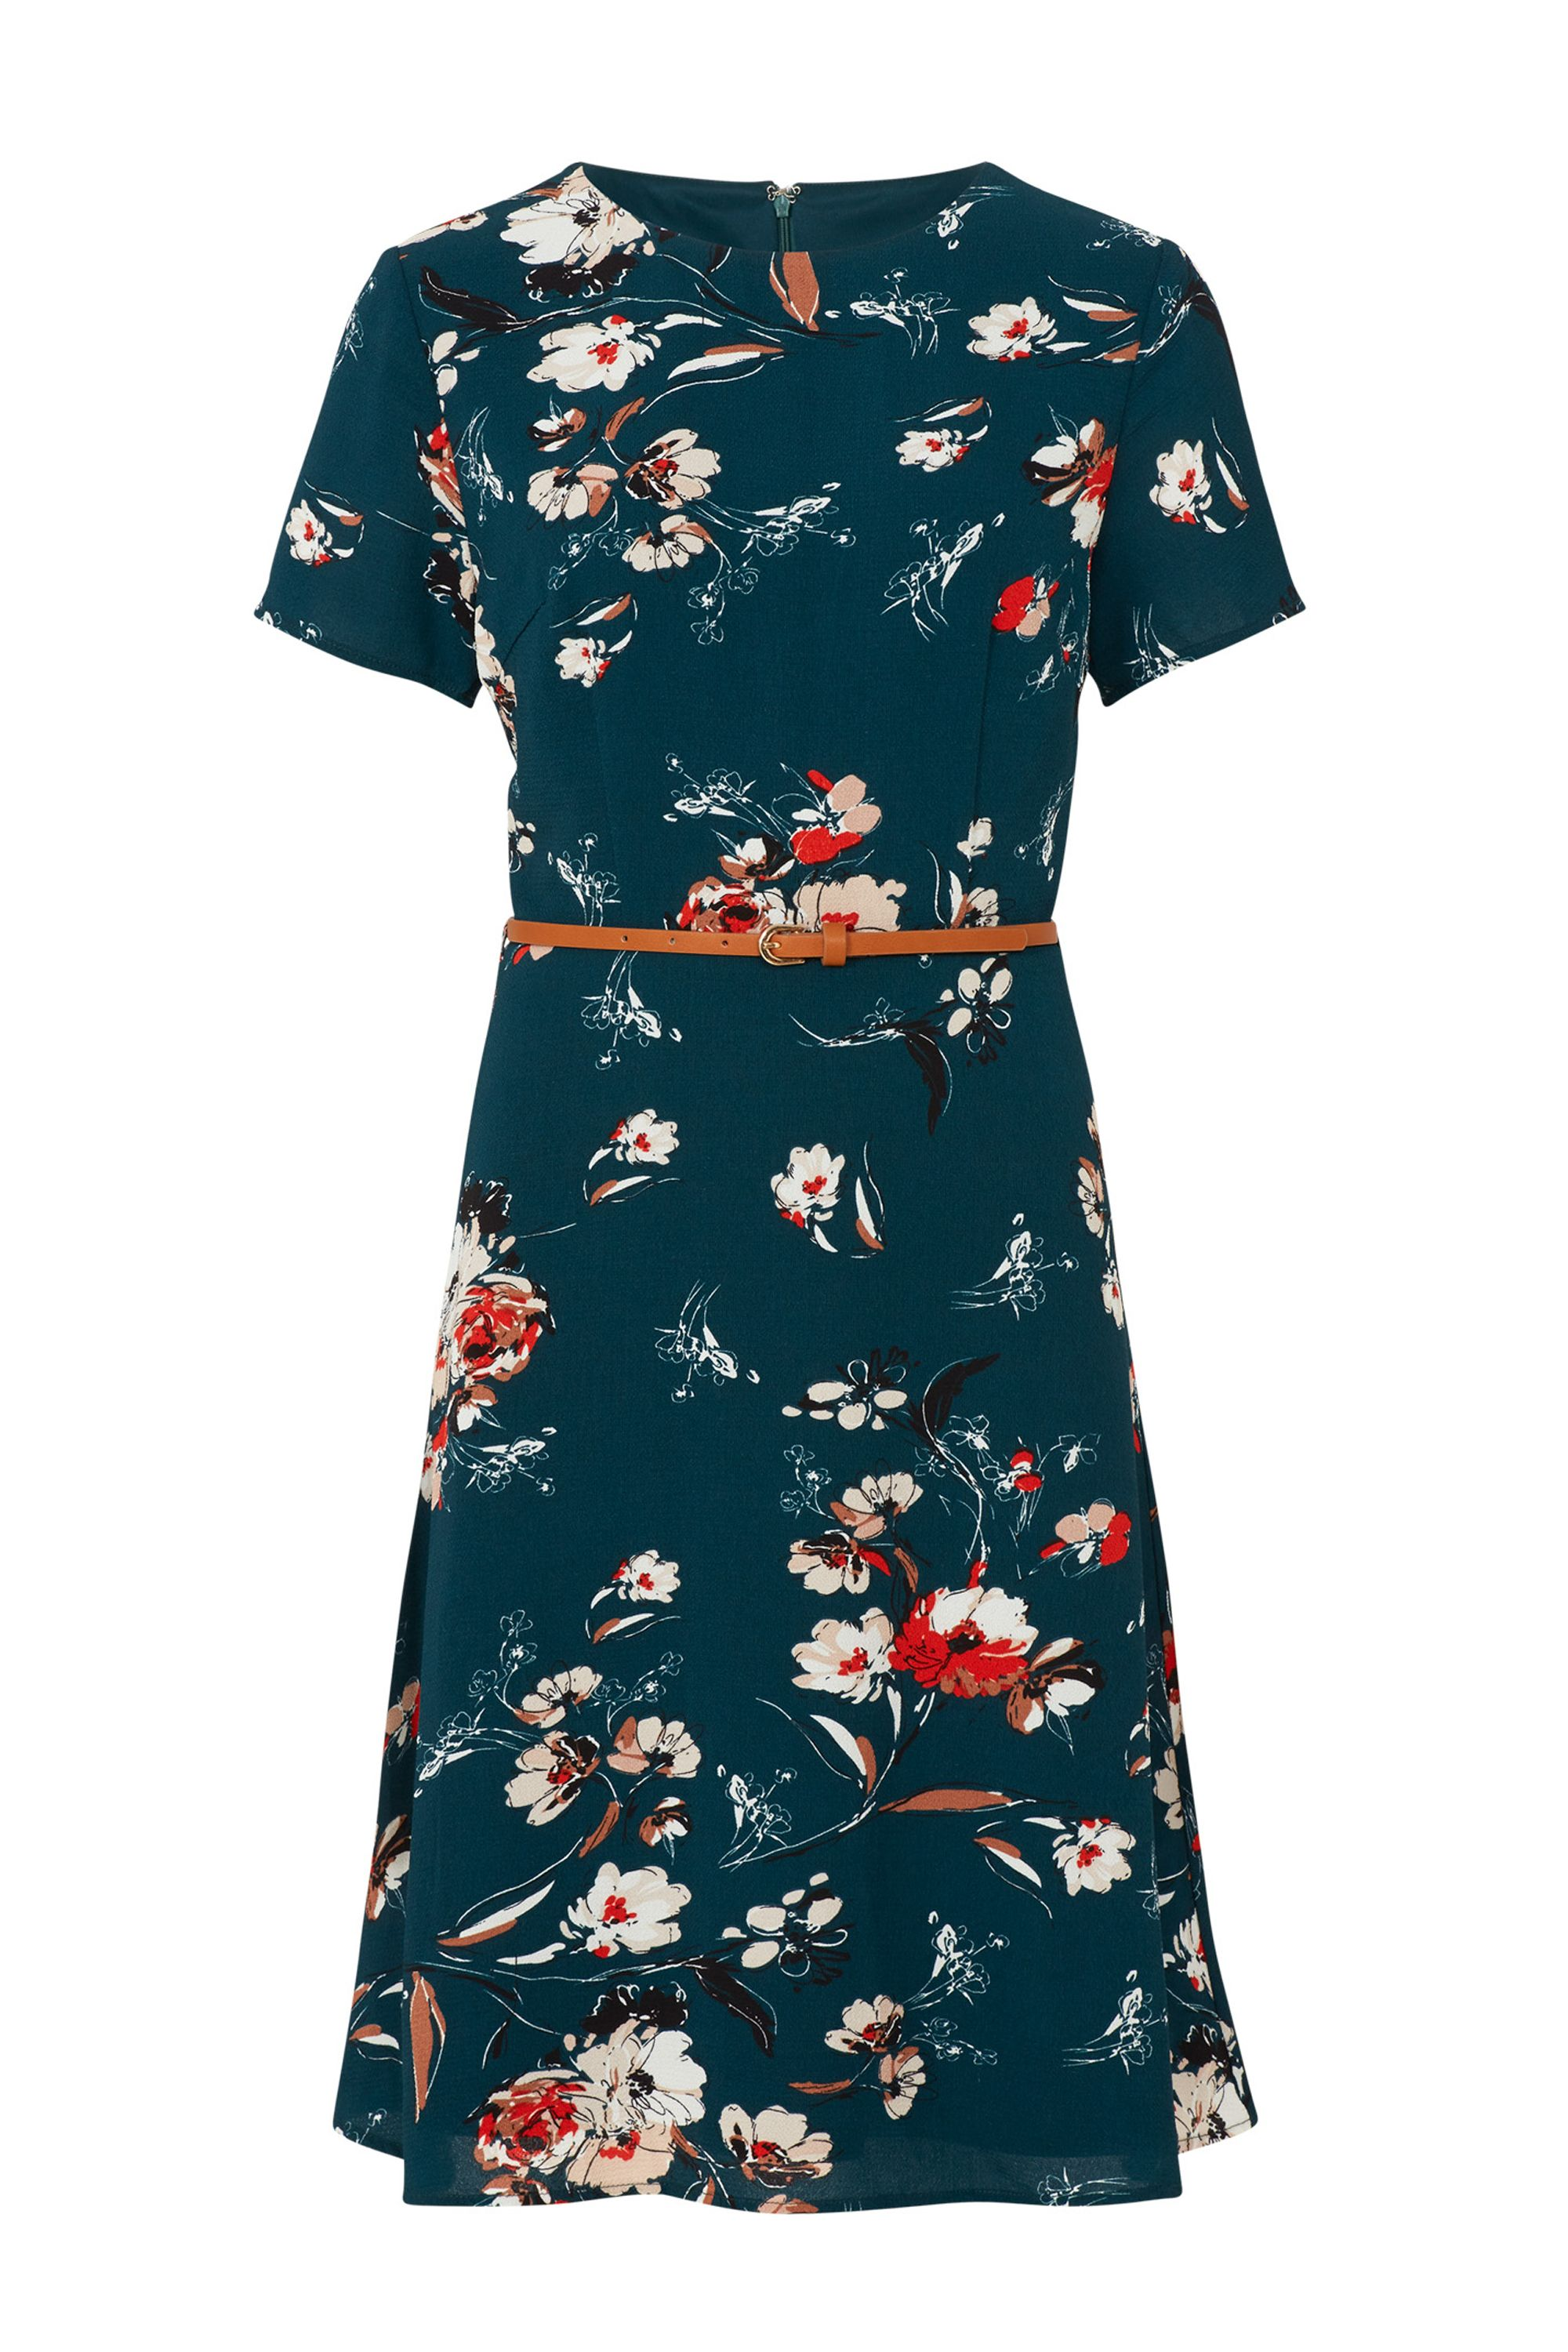 Sugarhill Boutique Ohara Sketchy Floral Dress, Multi-Coloured